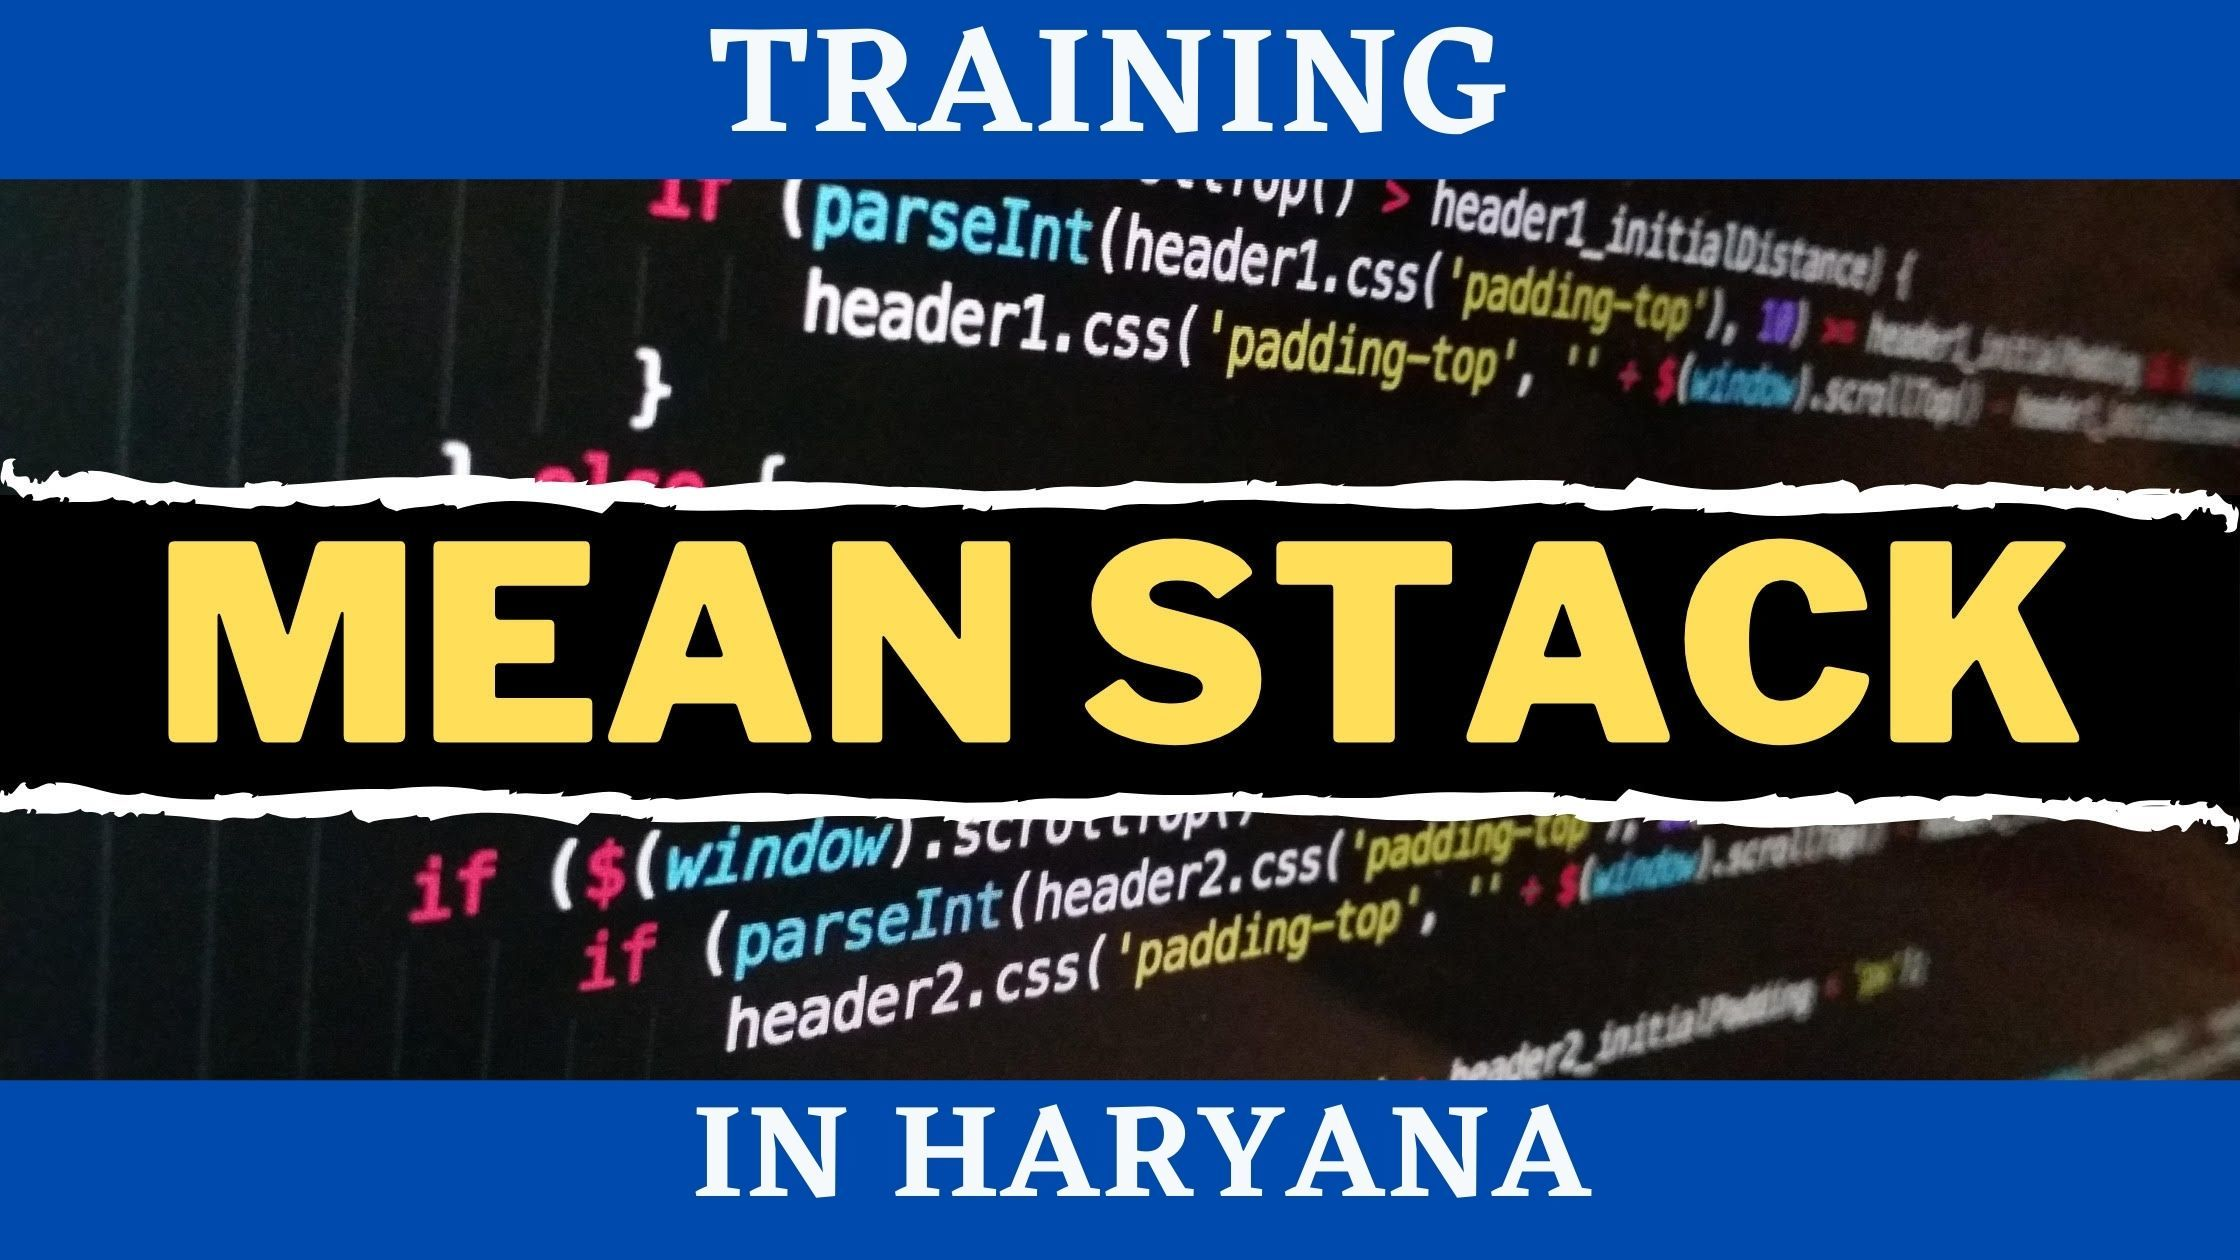 mean_stack_training_in_haryana-background.jpeg